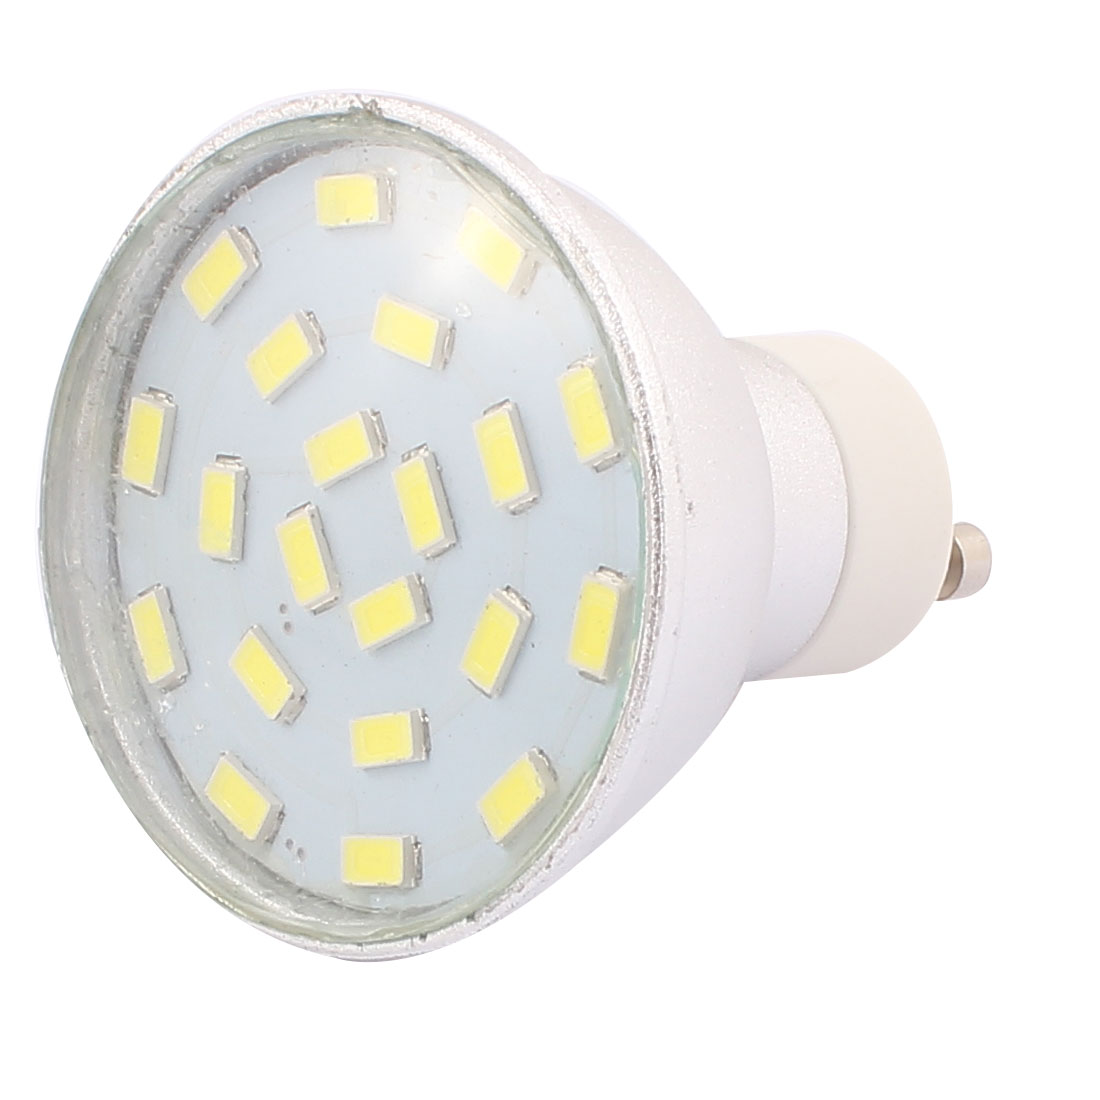 220V-240V-GU10-LED-Light-5W-5730-SMD-21-LEDs-Spotlight-Down-Lamp-Bulb-Pure-White